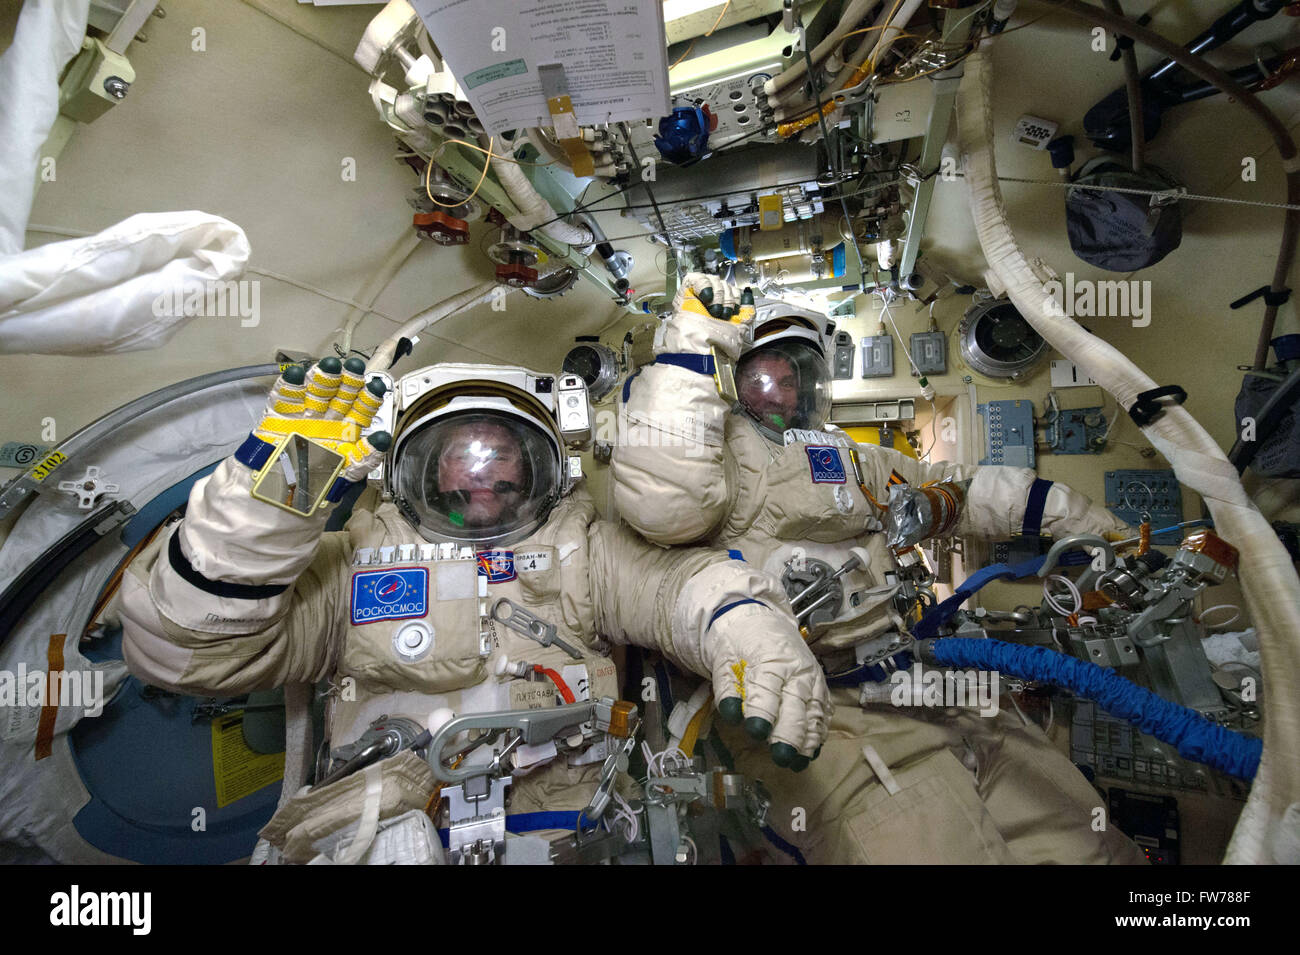 Russian cosmonauts Yuri Malenchenko and Sergei Volkov in their Orlan spacesuits before a spacewalk aboard the International - Stock Image